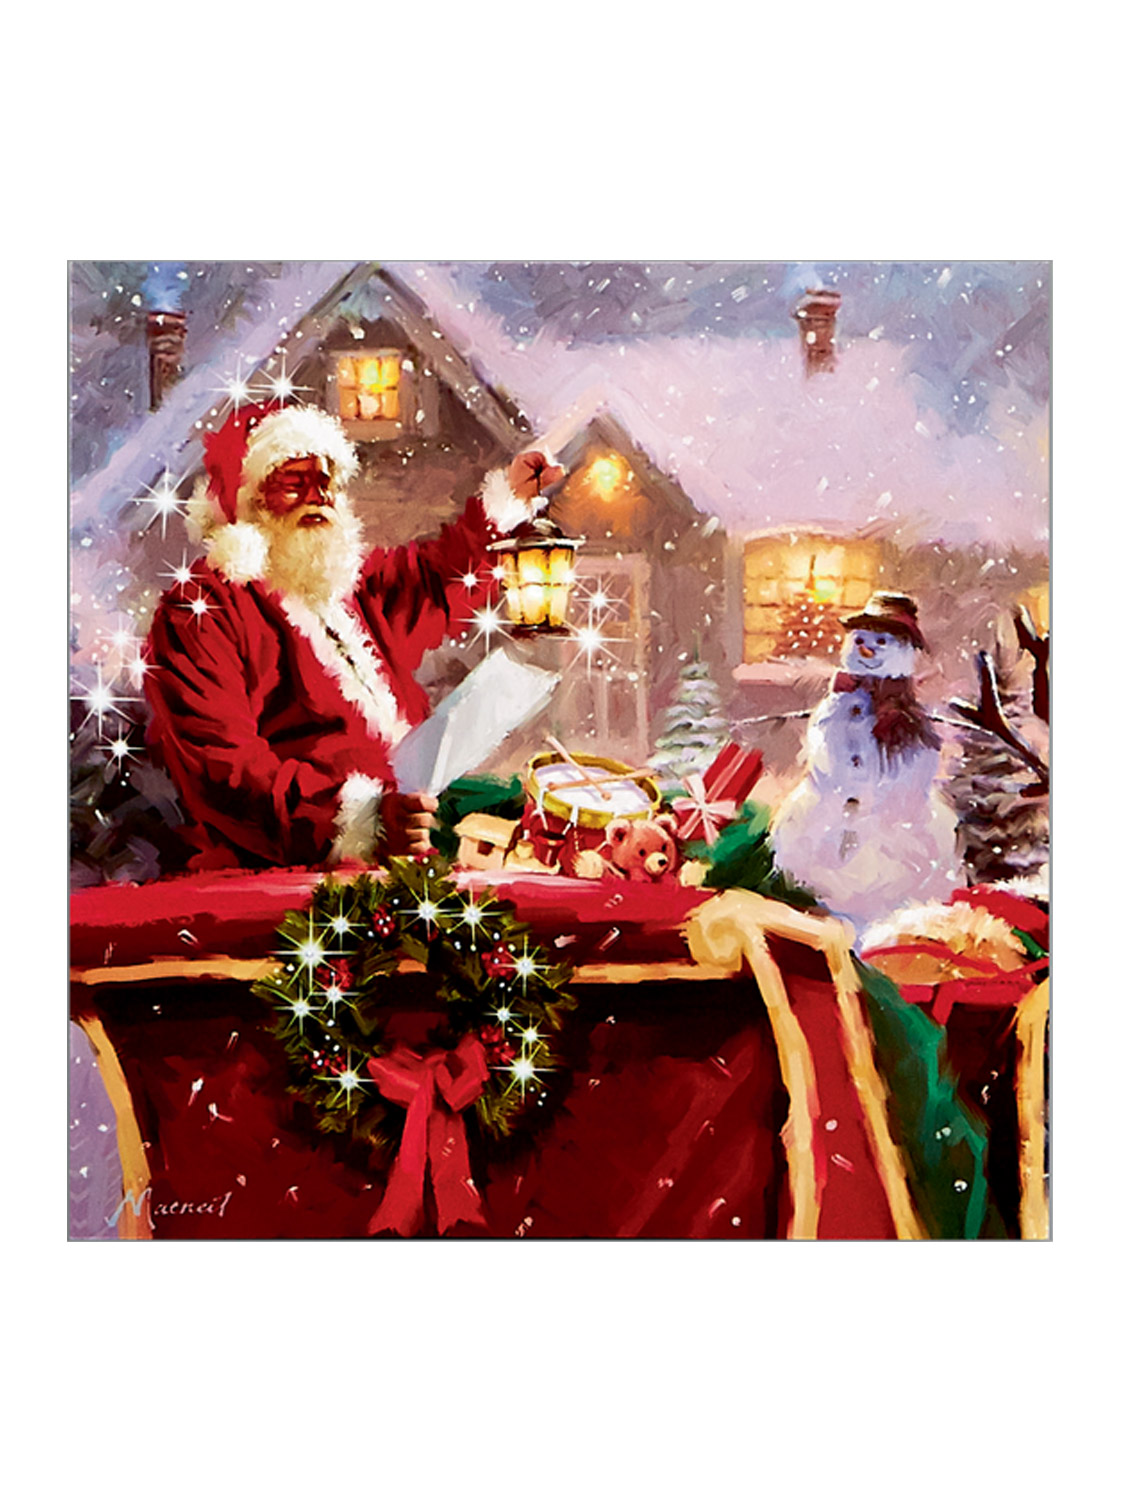 Light Up Christmas Canvas Scene Led Fibre Optic Picture. Stainless Steel Kitchen Storage Rack. Kitchen Cabinet Spice Organizers. Pictures Modern Kitchens. Organizing Kitchen Pantry. Country Cottage Kitchen Ideas. Organizing Pots And Pans In Kitchen Cabinets. Red Silicone Kitchen Utensils. Red Kitchen Cart